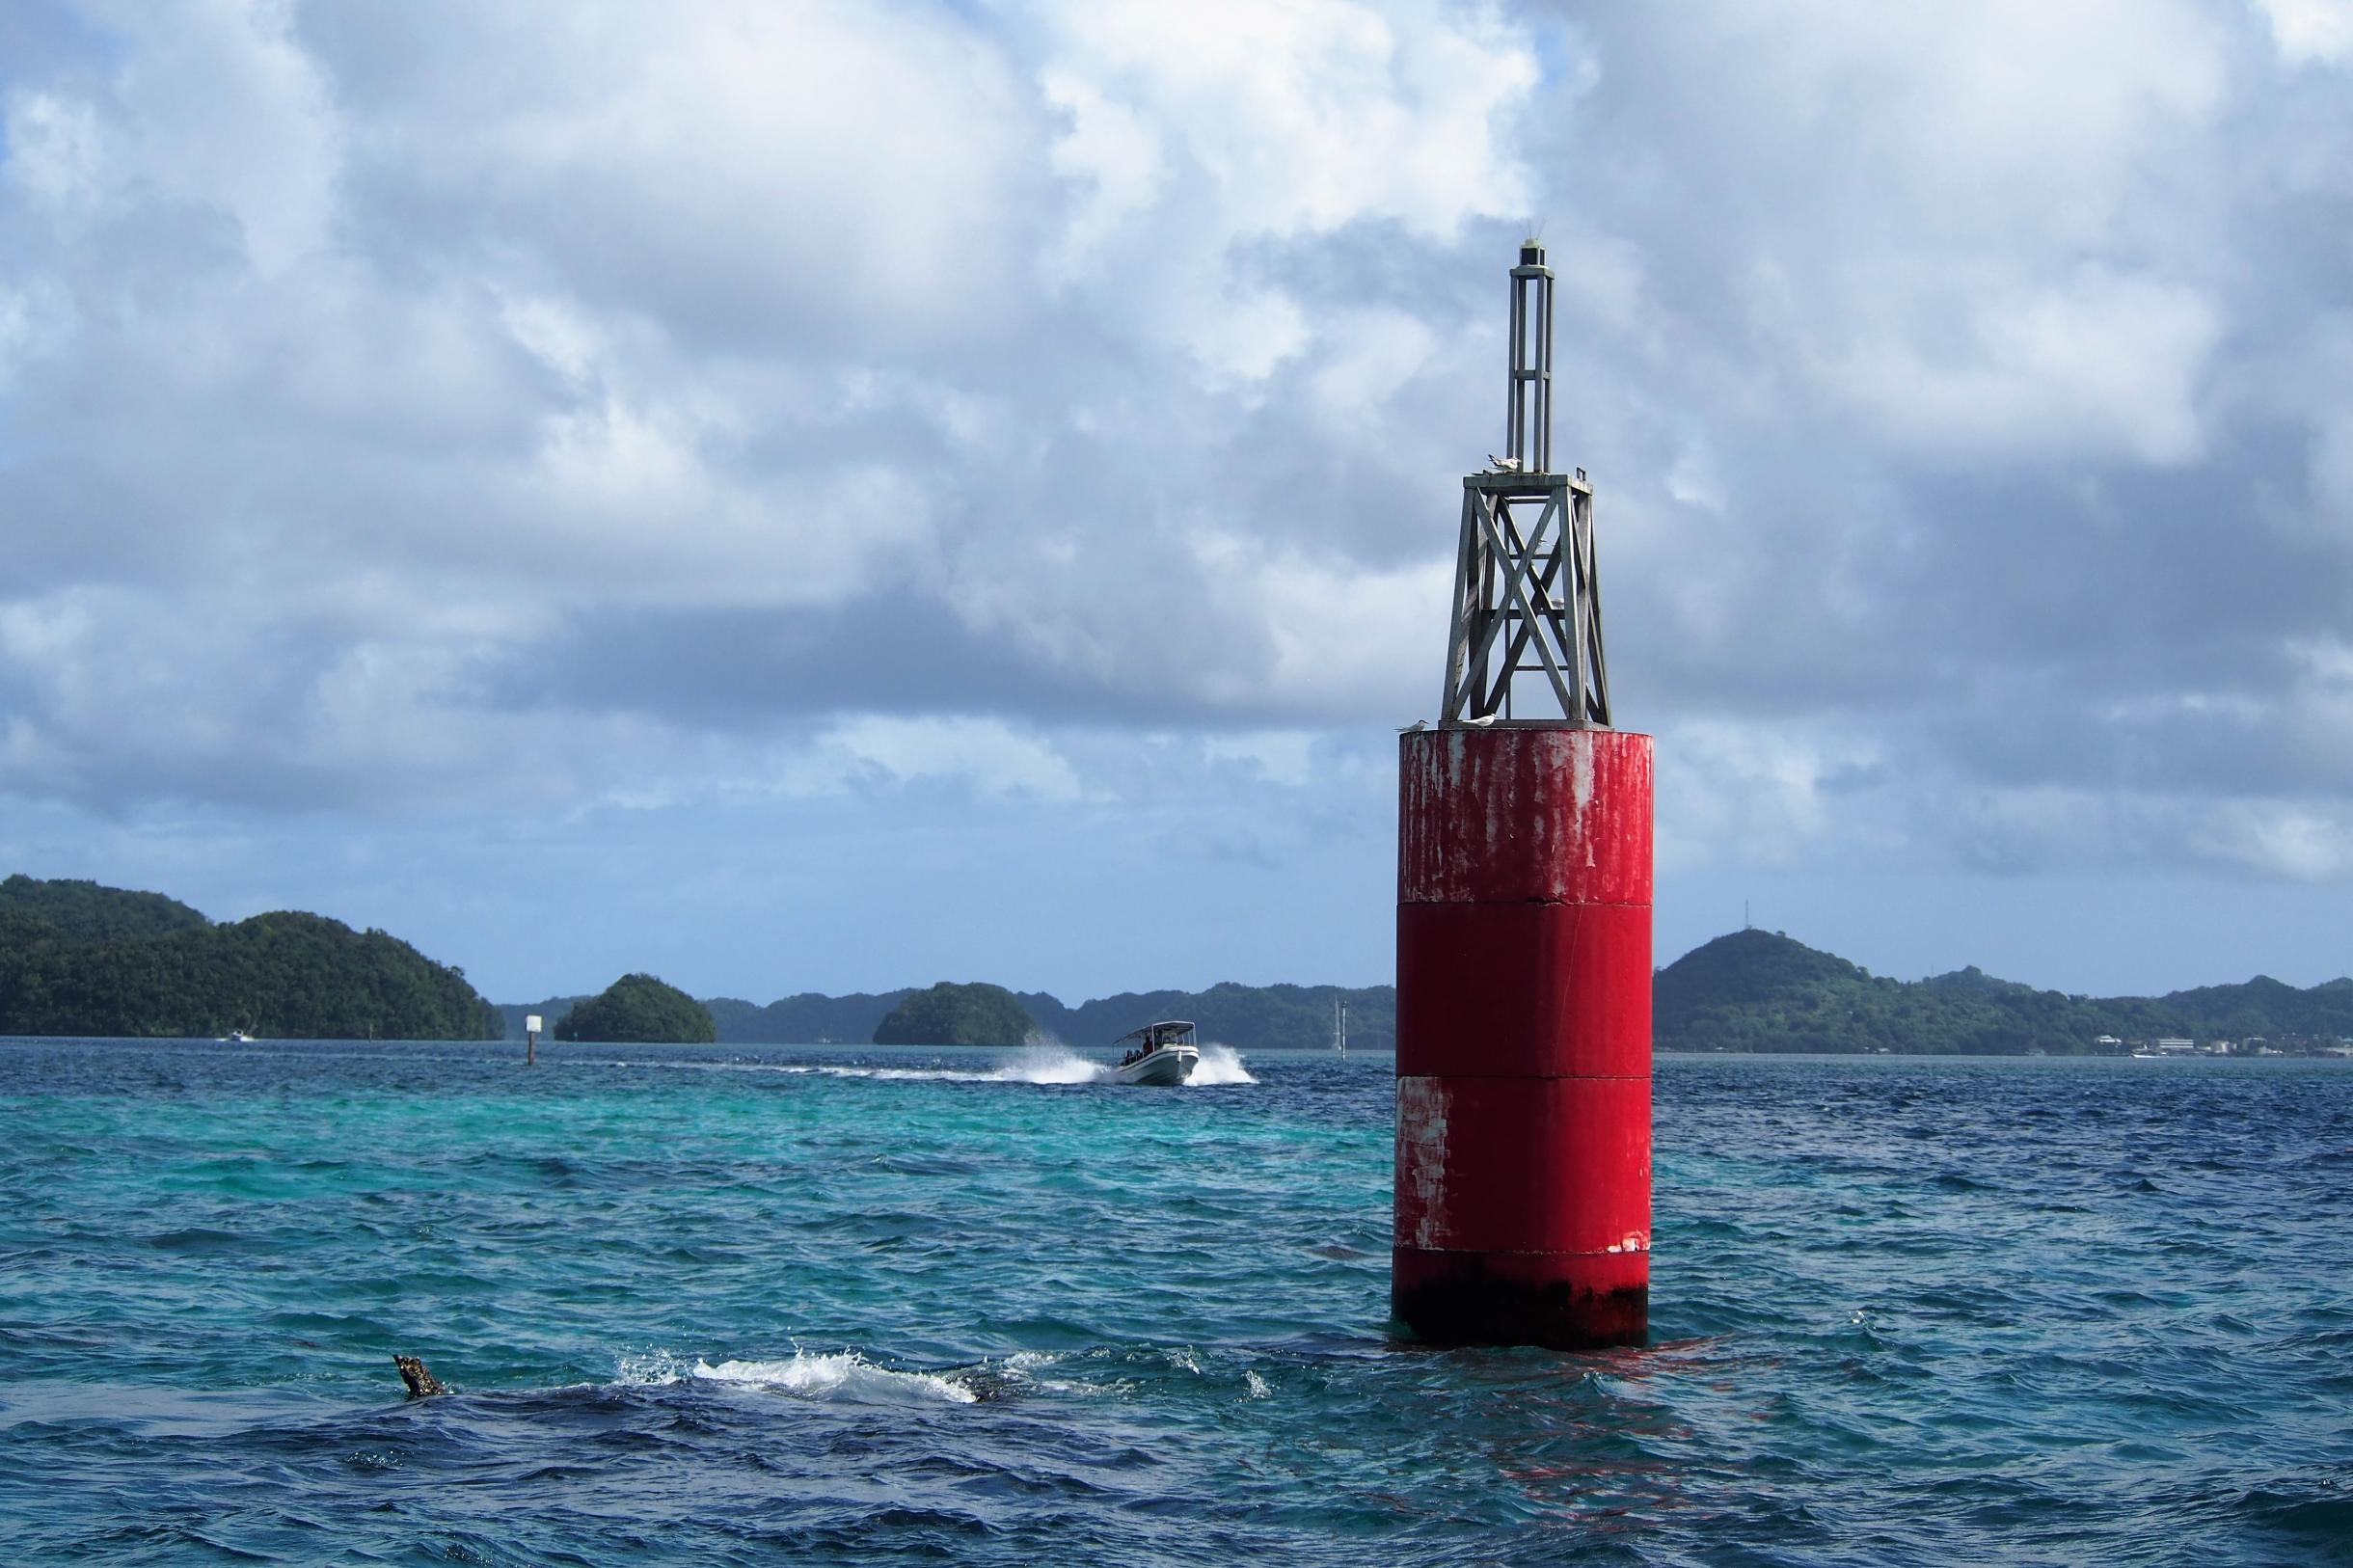 East channel entrance lighthouse in Koror, Palau